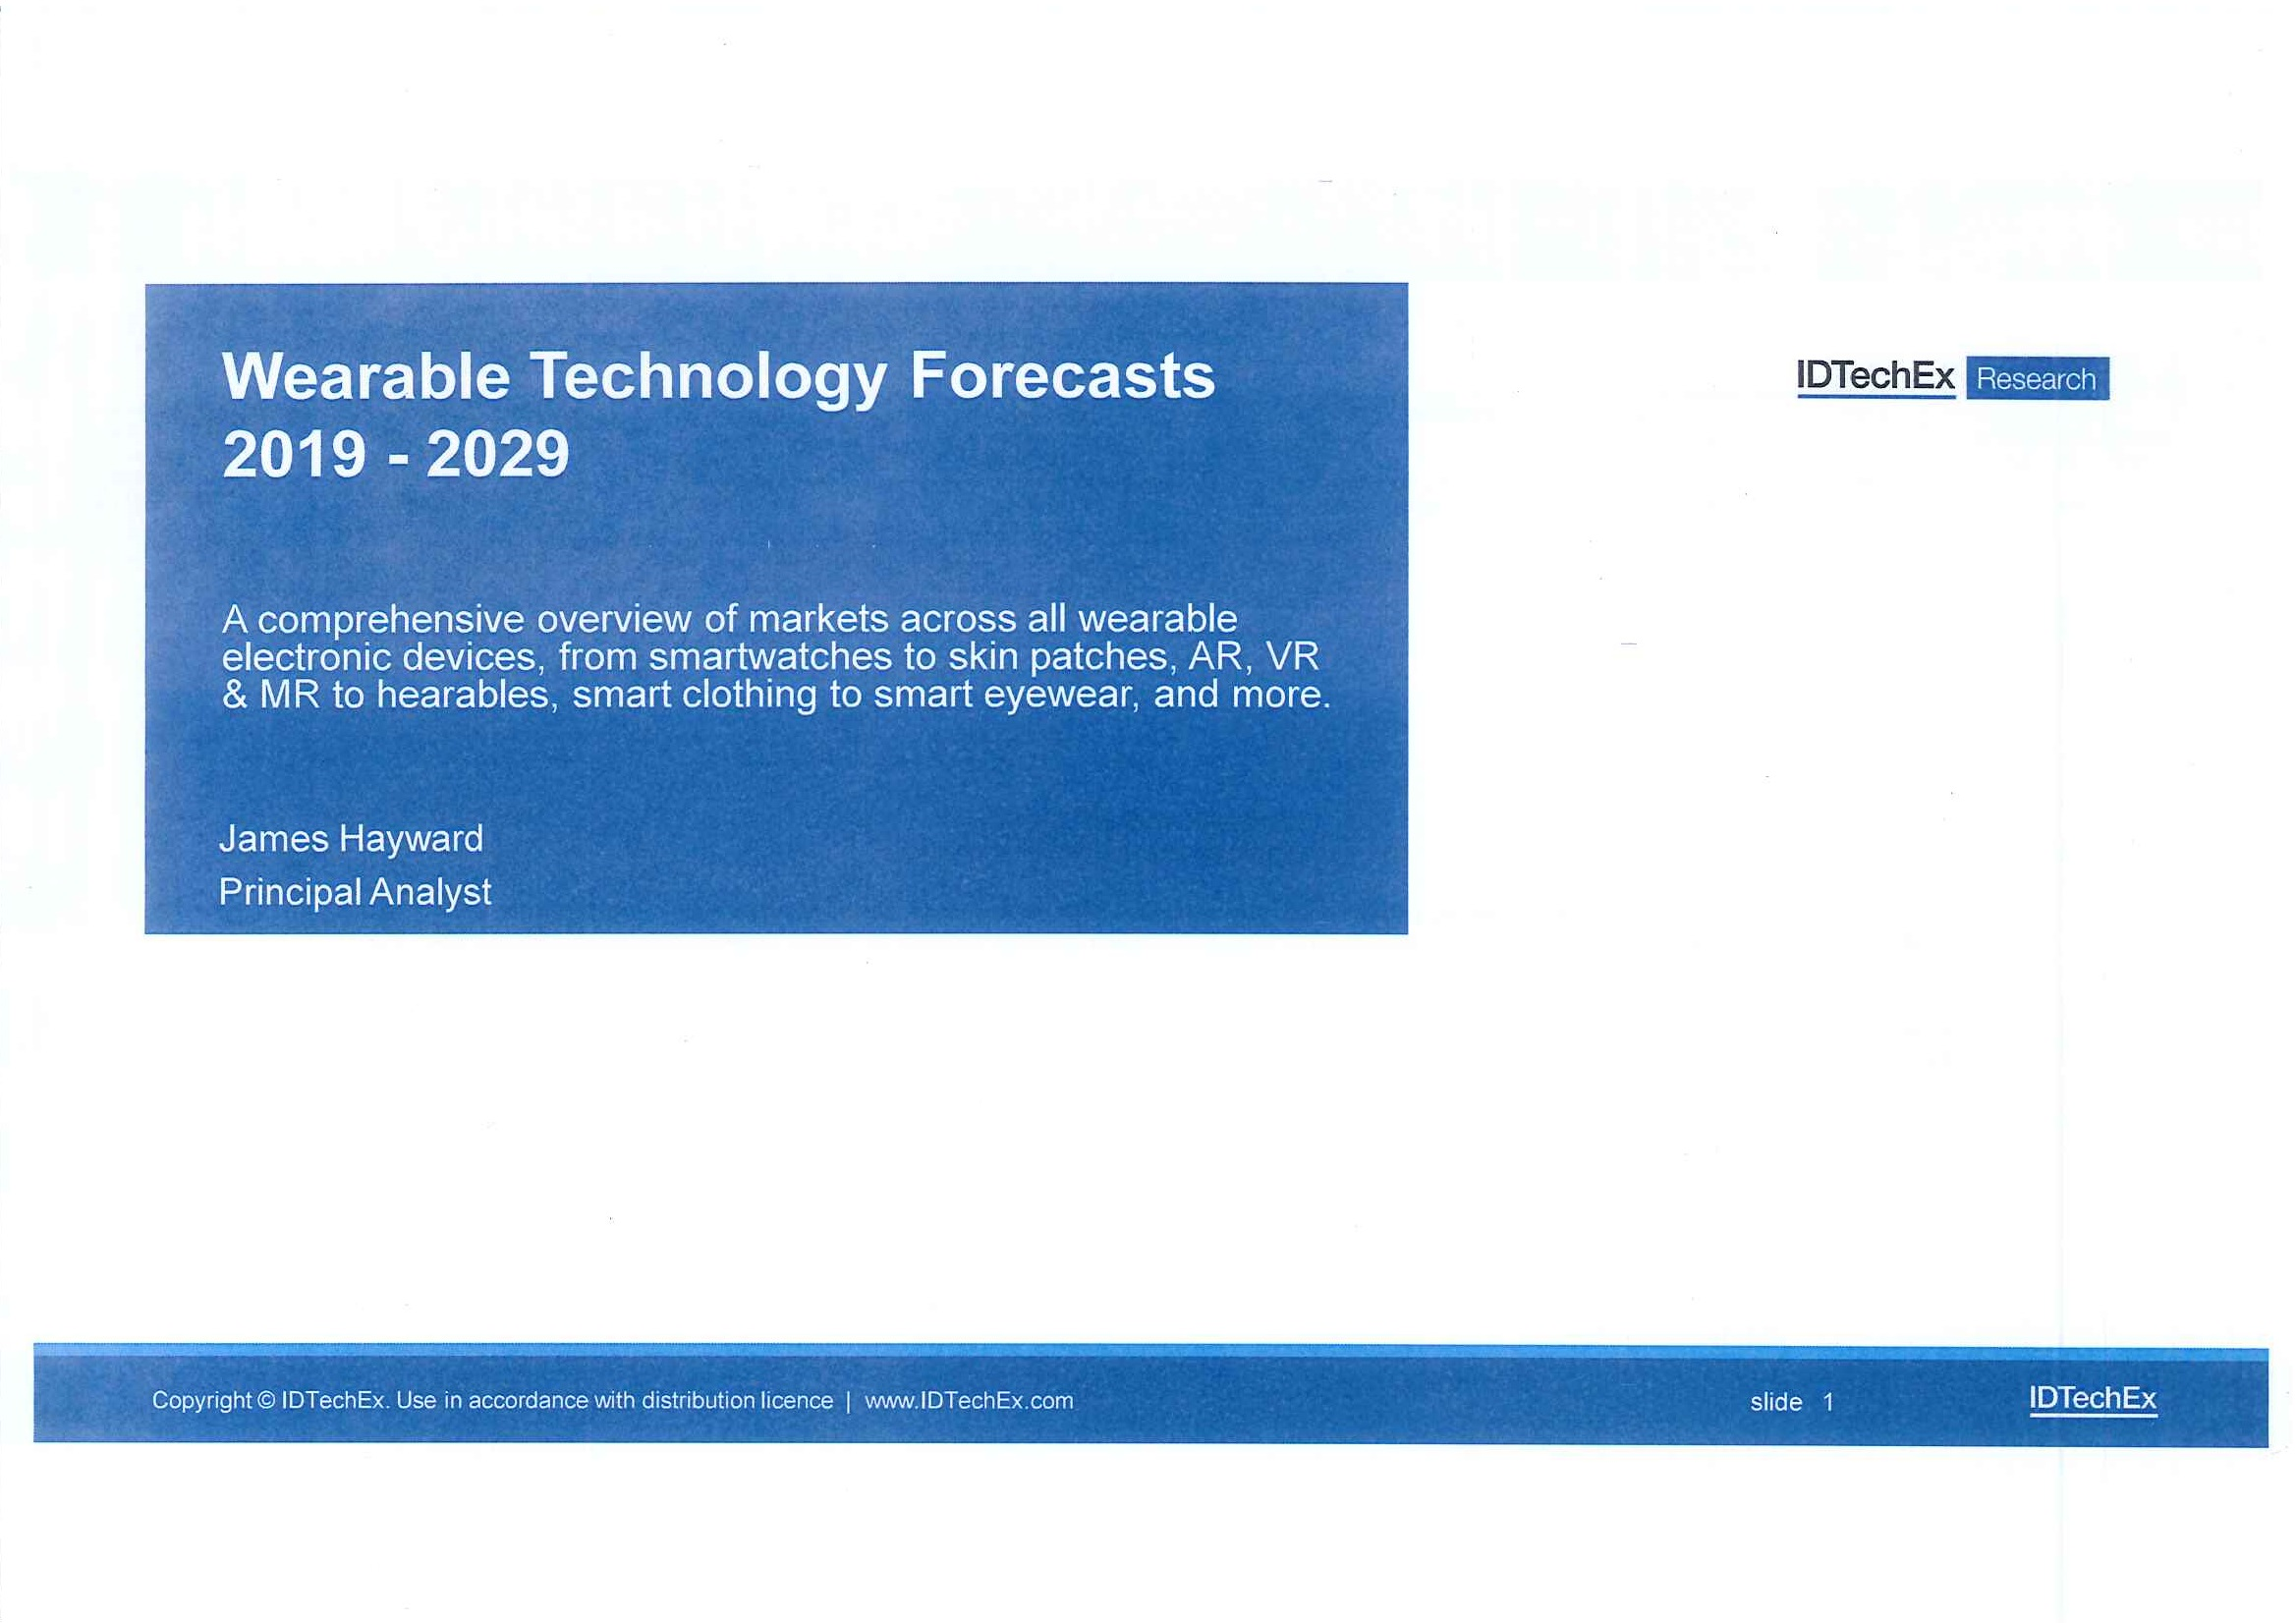 Wearable technology forecasts 2019-2029 [e-book]:a comprehensive overview of markets across all wearable electronic devices, from smartwatches to skin patches, AR, VR & MR to hearables, smart clothing to smart eyewear, and more